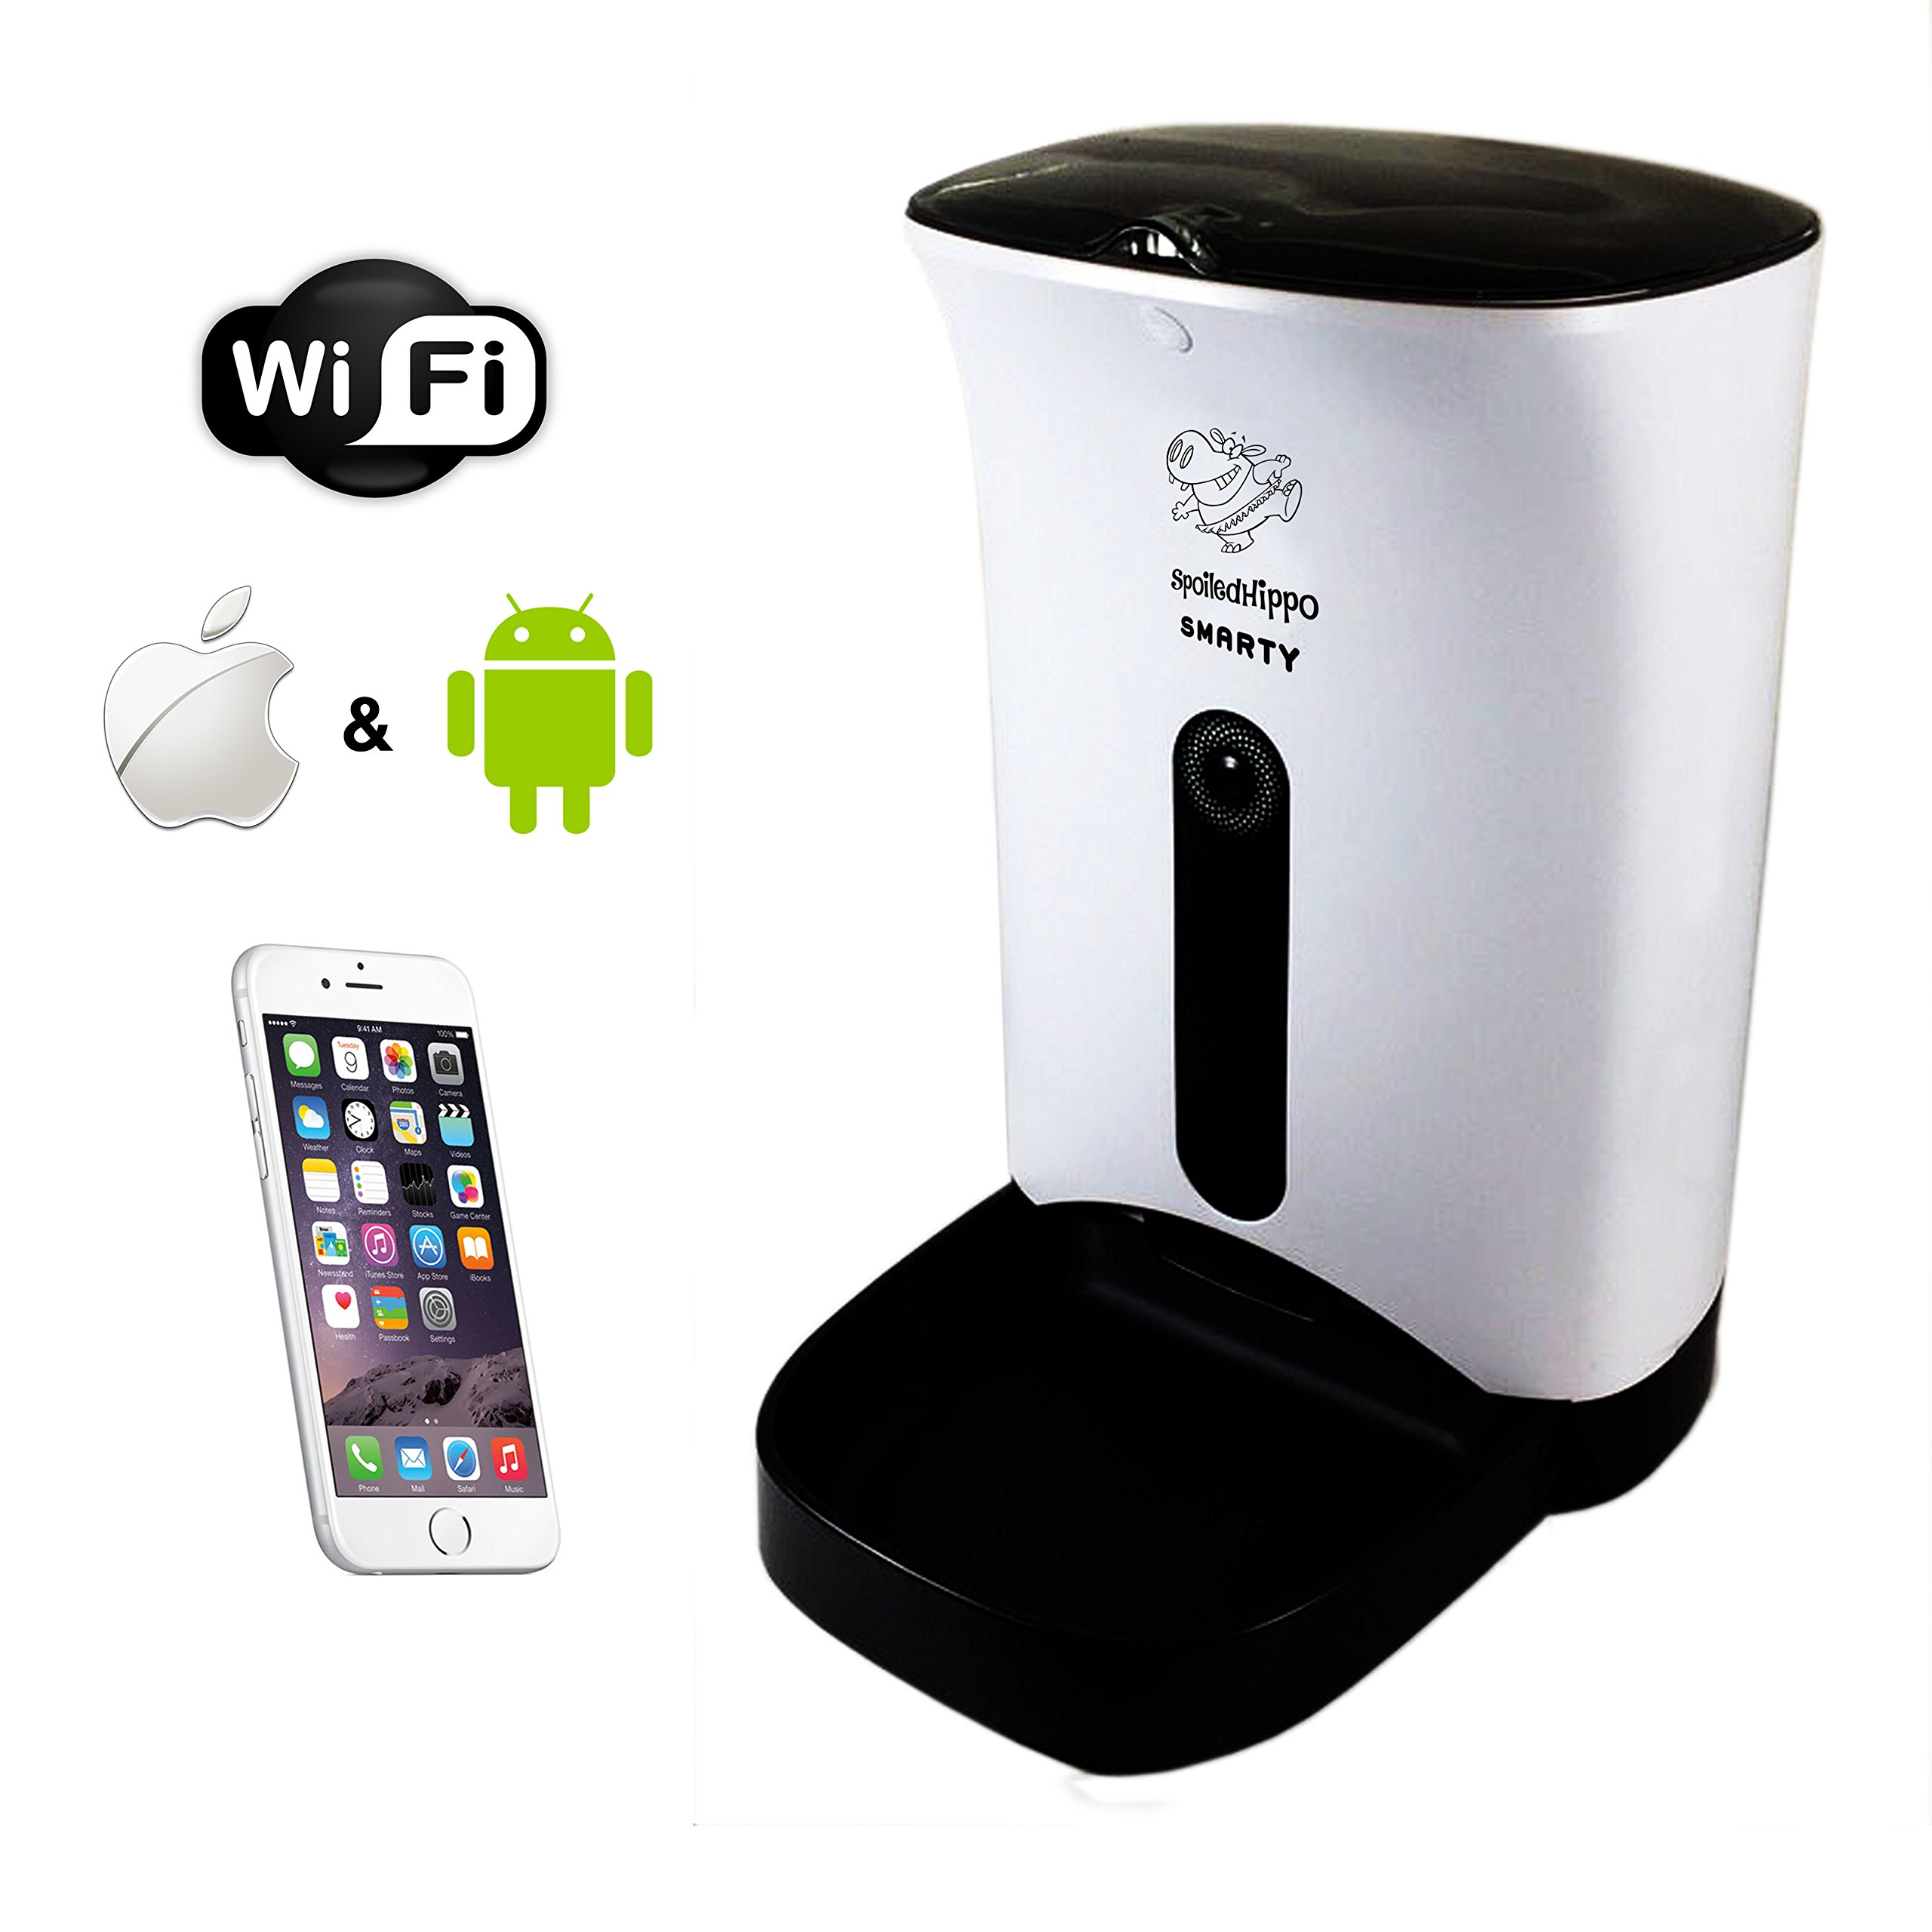 Automatic Pet Feeder - Automated Feeding Robot - Smartphone, Iphone, Android, WiFi - Good for Small, Medium Dogs, Cats, Ferrets - Dry Food - with Built in HD Camera and Microphone